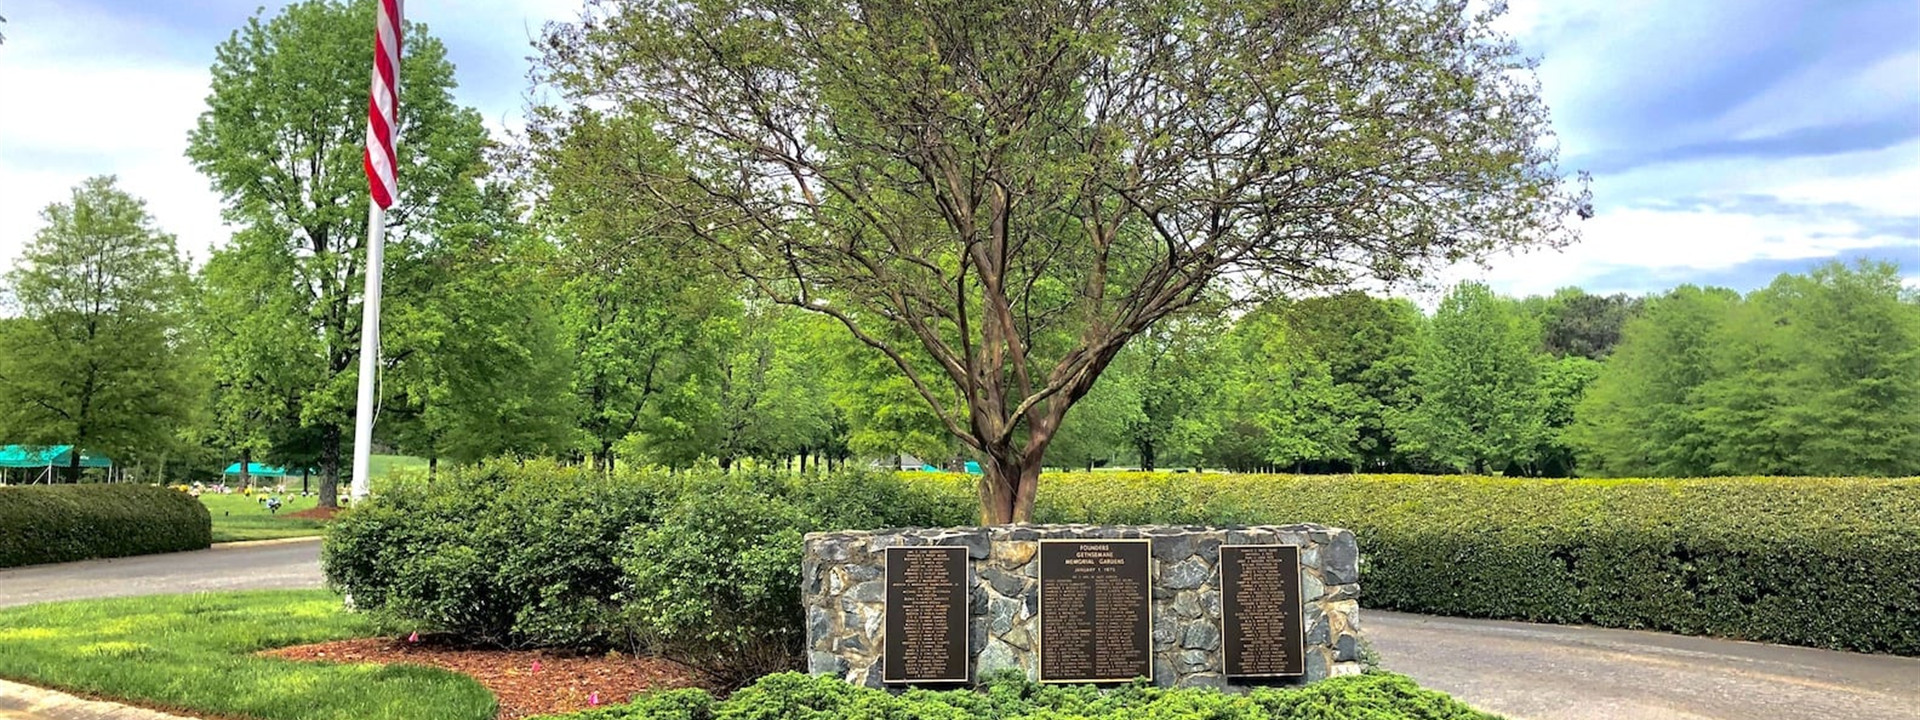 About Us | Gethsemane Cemetery and Memorial Gardens